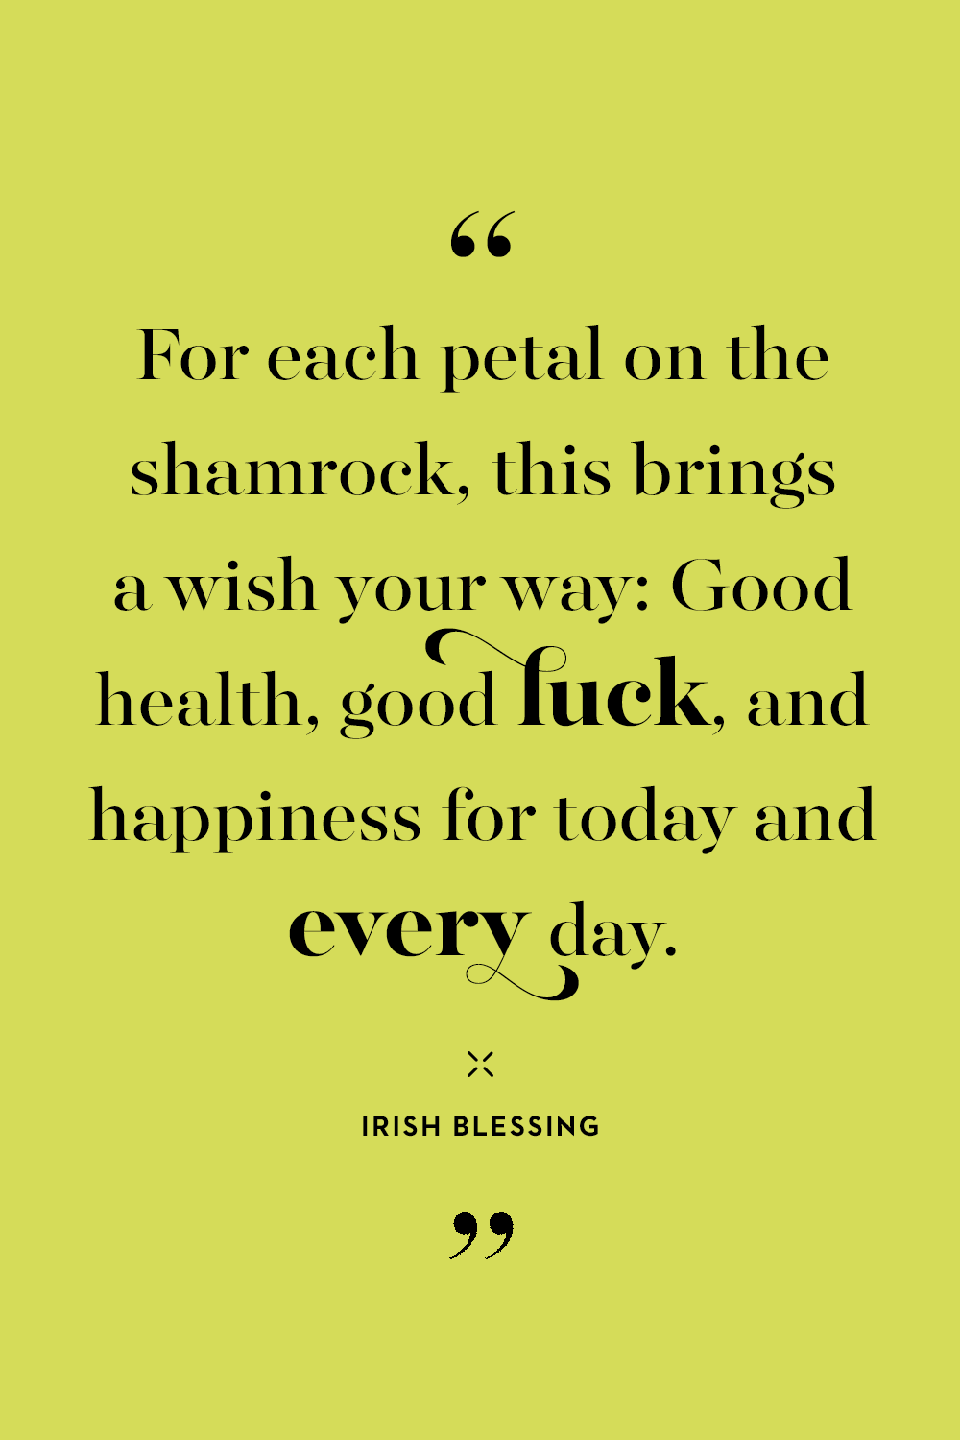 <p>For each petal on the shamrock, this brings a wish your way: Good health, good luck, and happiness for today and every day.</p>